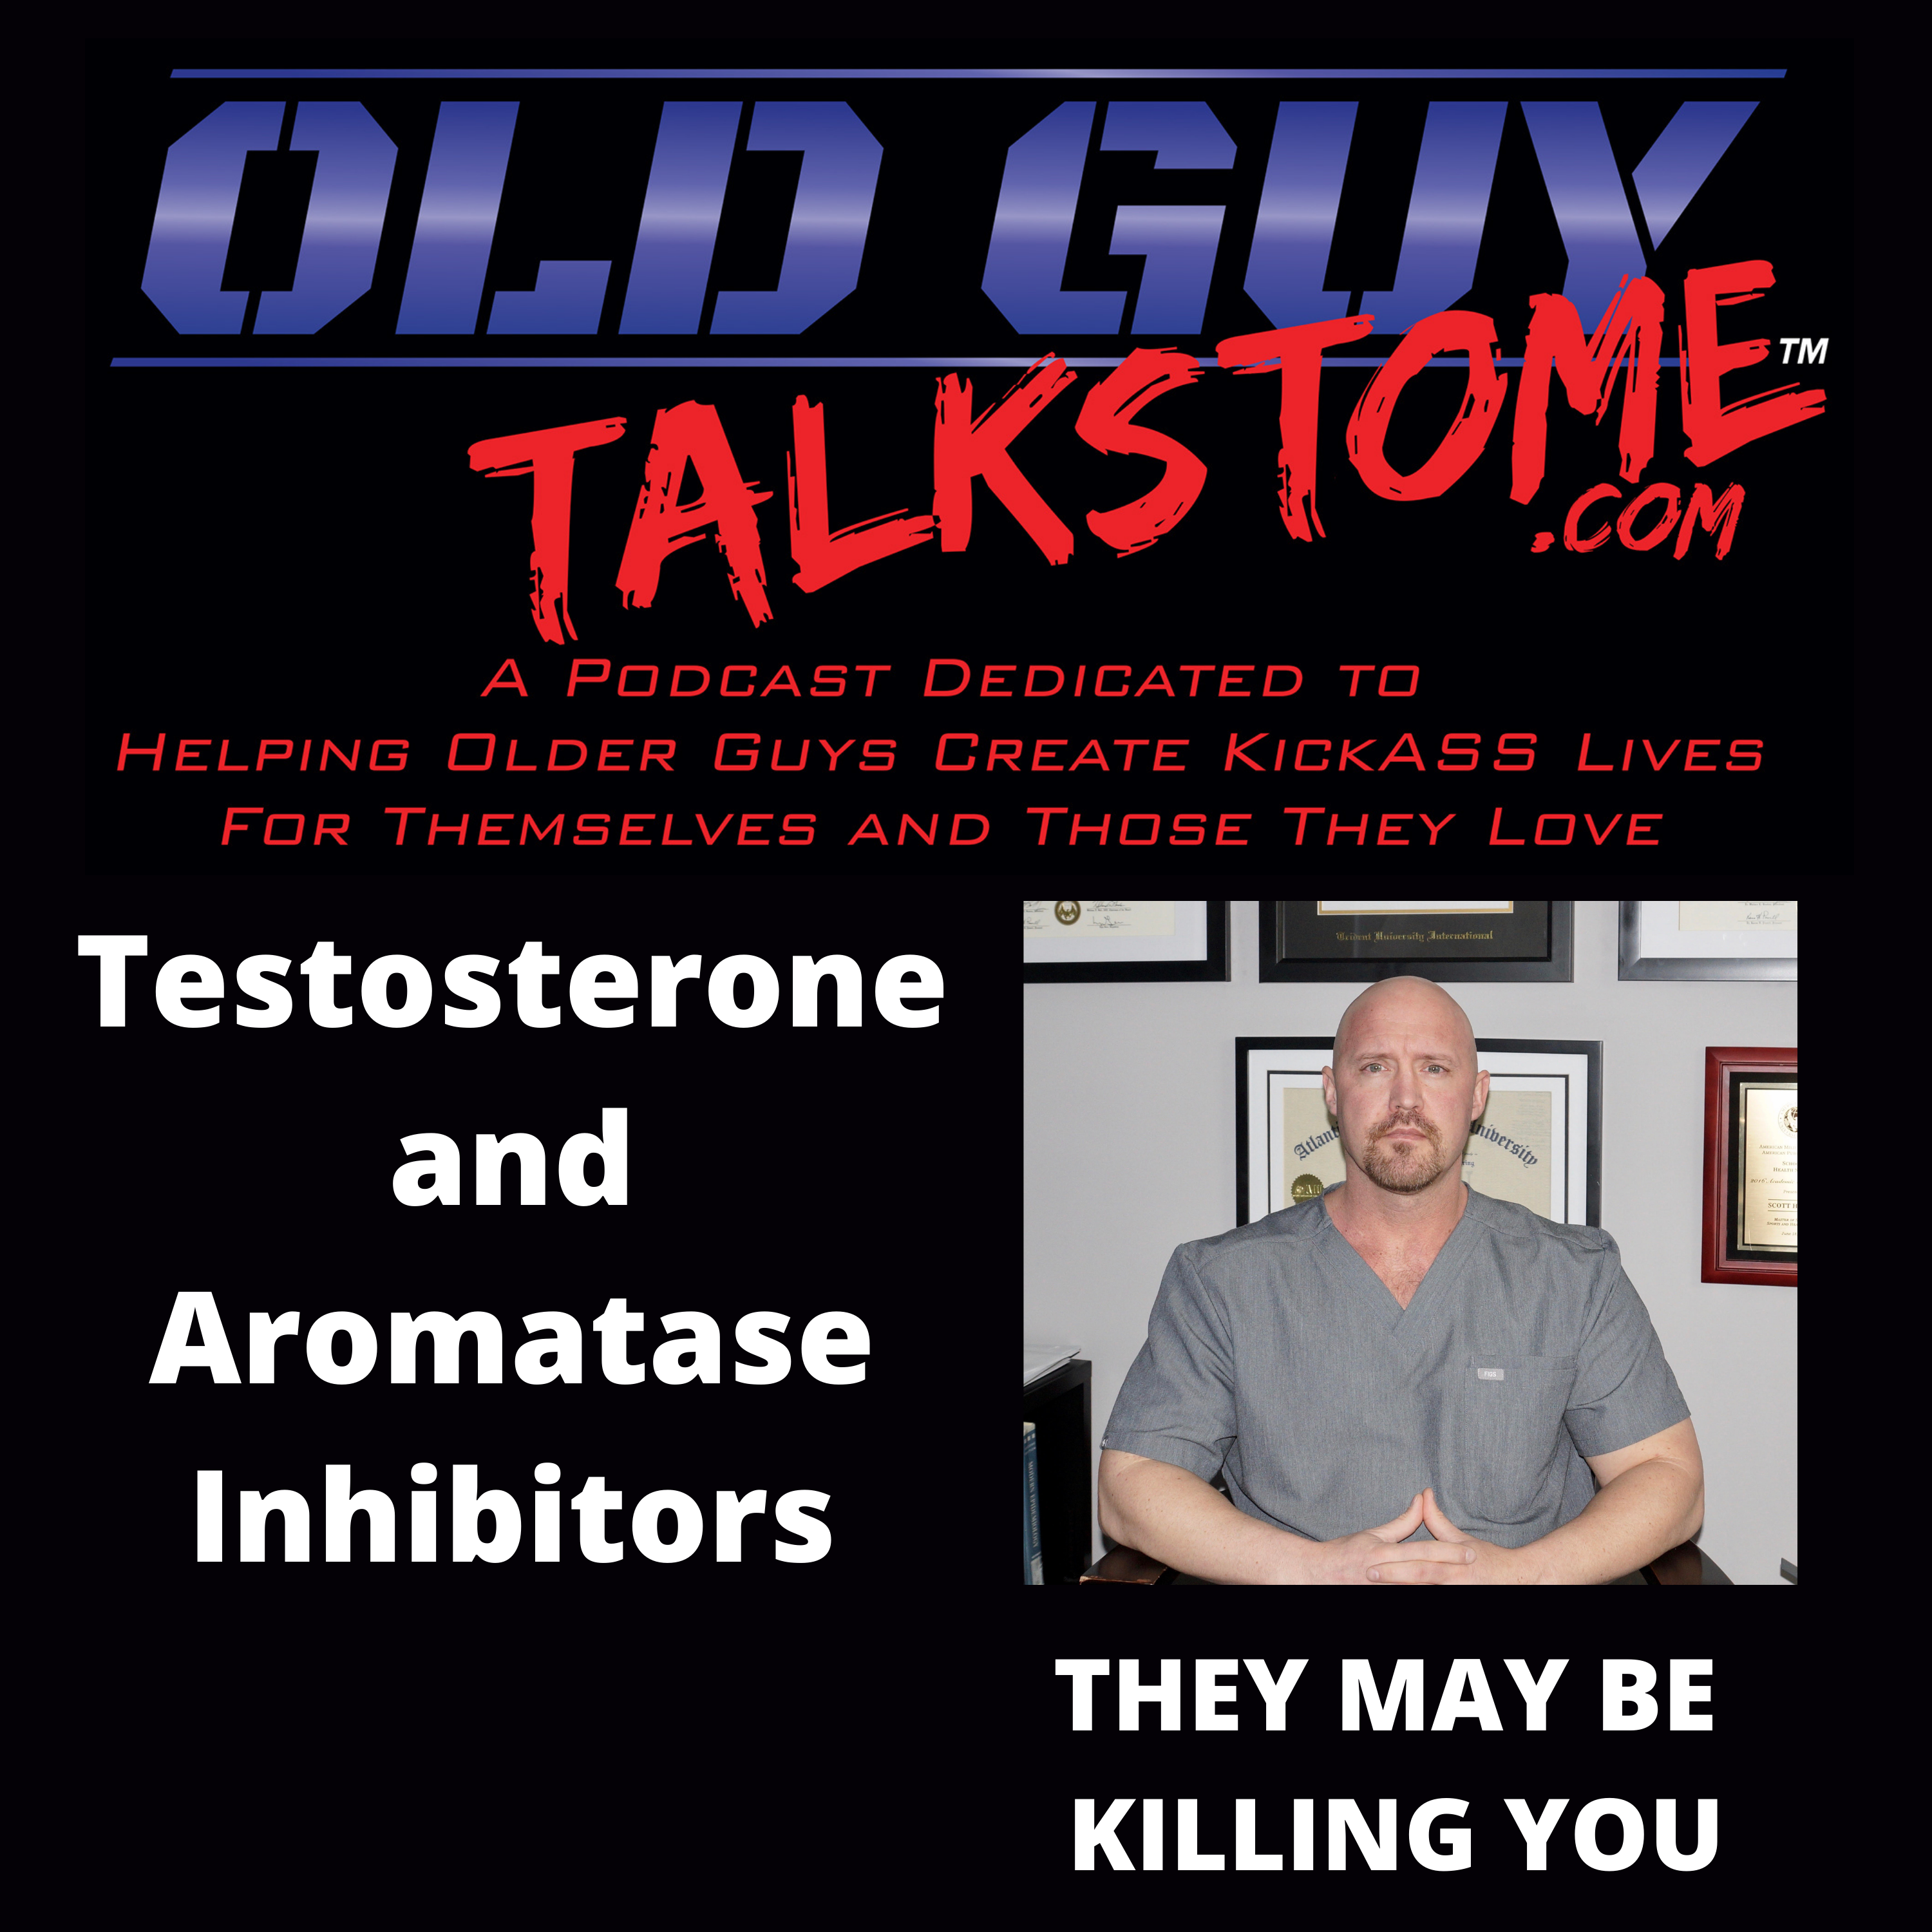 OldGuyTalksToMe - ARE YOU TAKING TESTOSTERONE AND AROMATASE INHIBITORS?